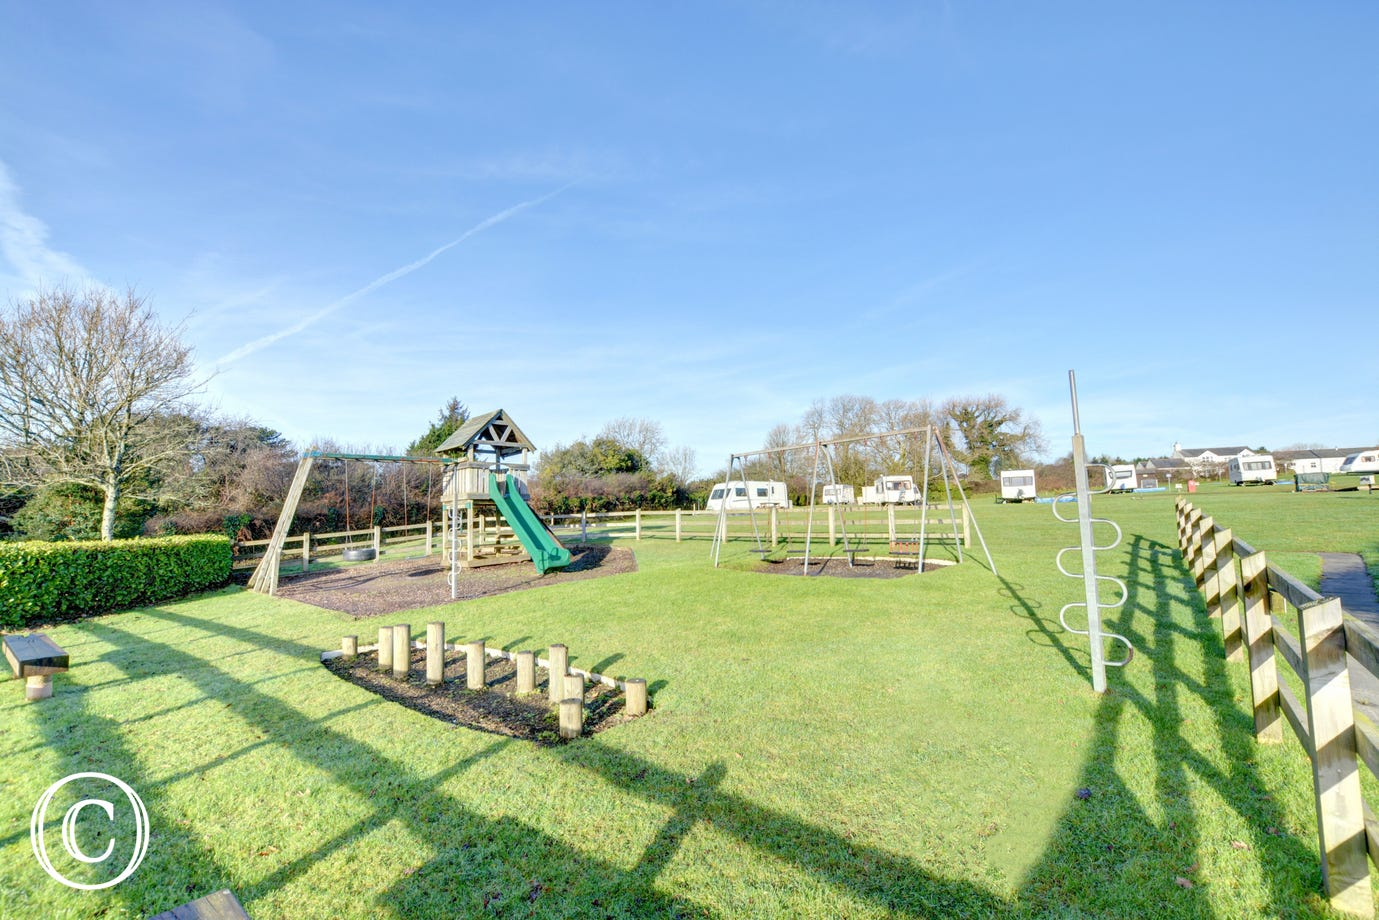 Moreton farmhouse is situated on a small caravan park with communal areas and children's playground